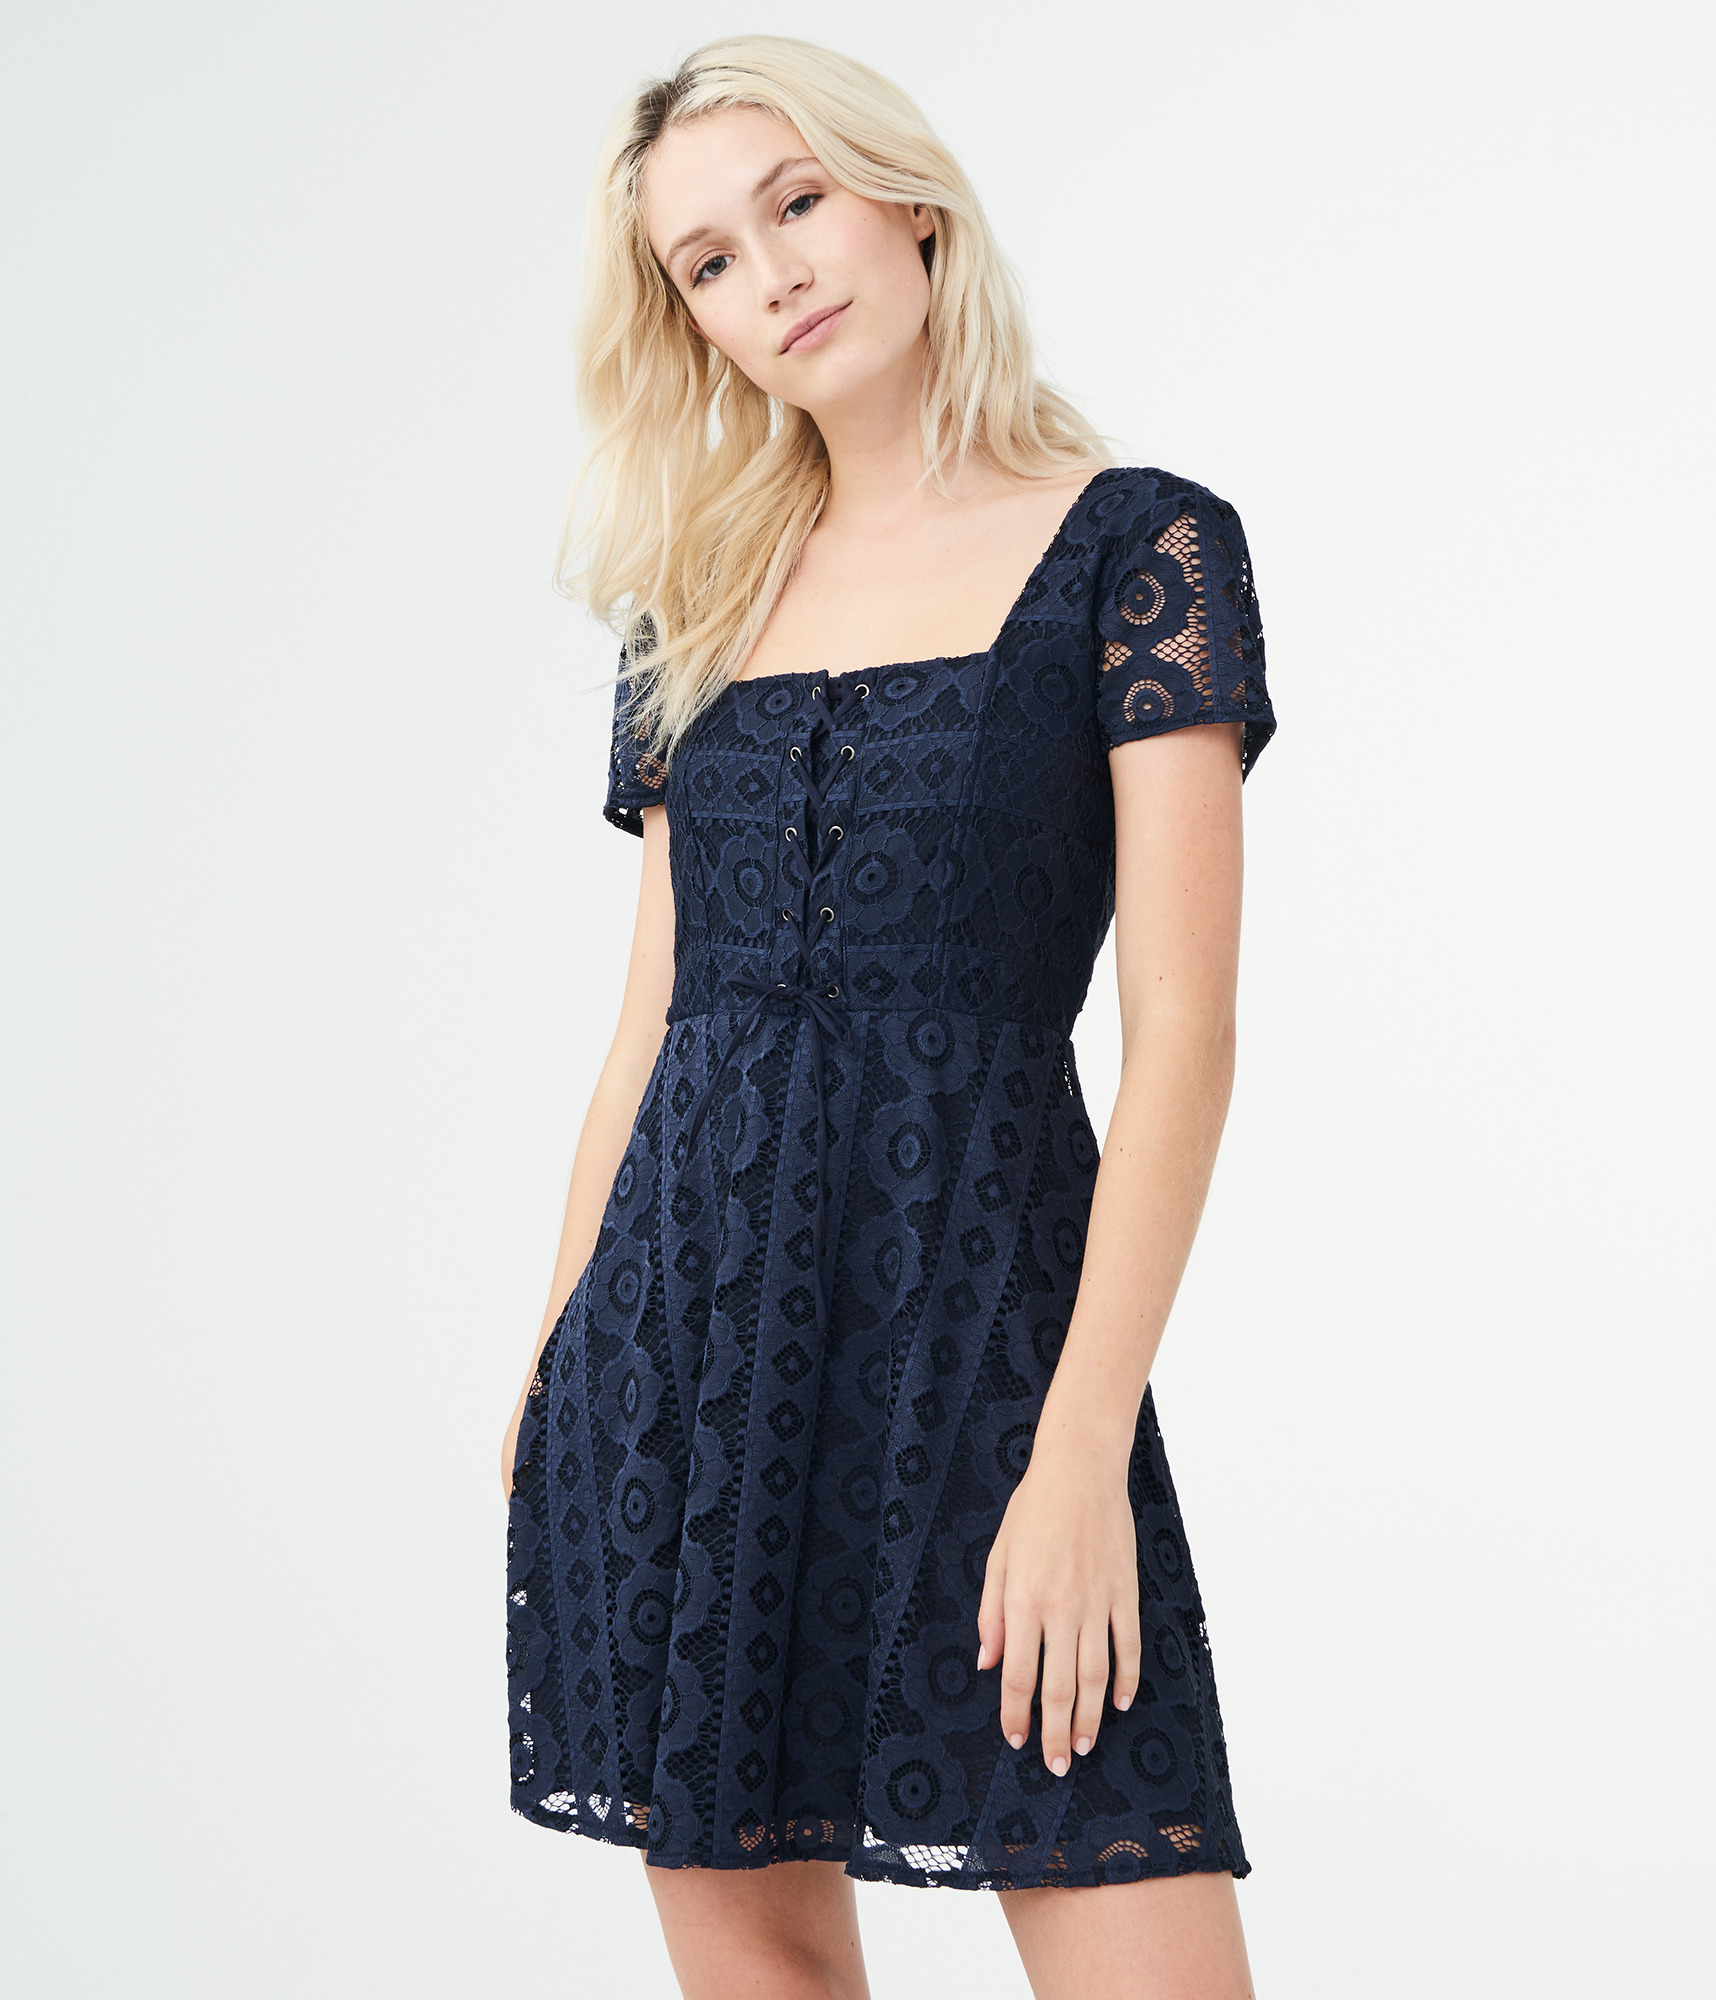 51921173f9 Details about aeropostale womens solid square-neck lace corset fit & flare  dress